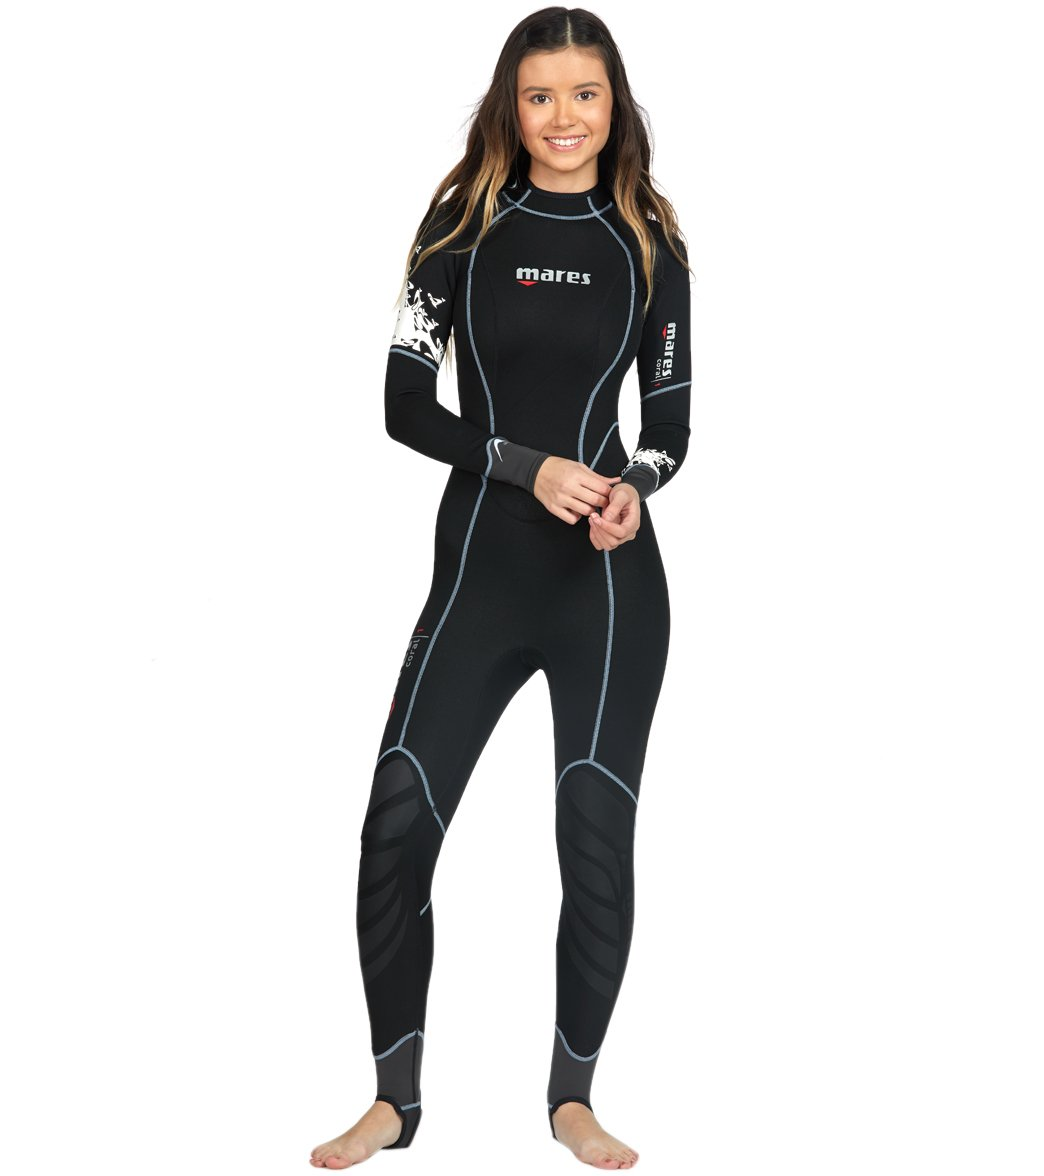 dea843411b Mares Women s She Dives Coral Wetsuit at SwimOutlet.com - Free Shipping